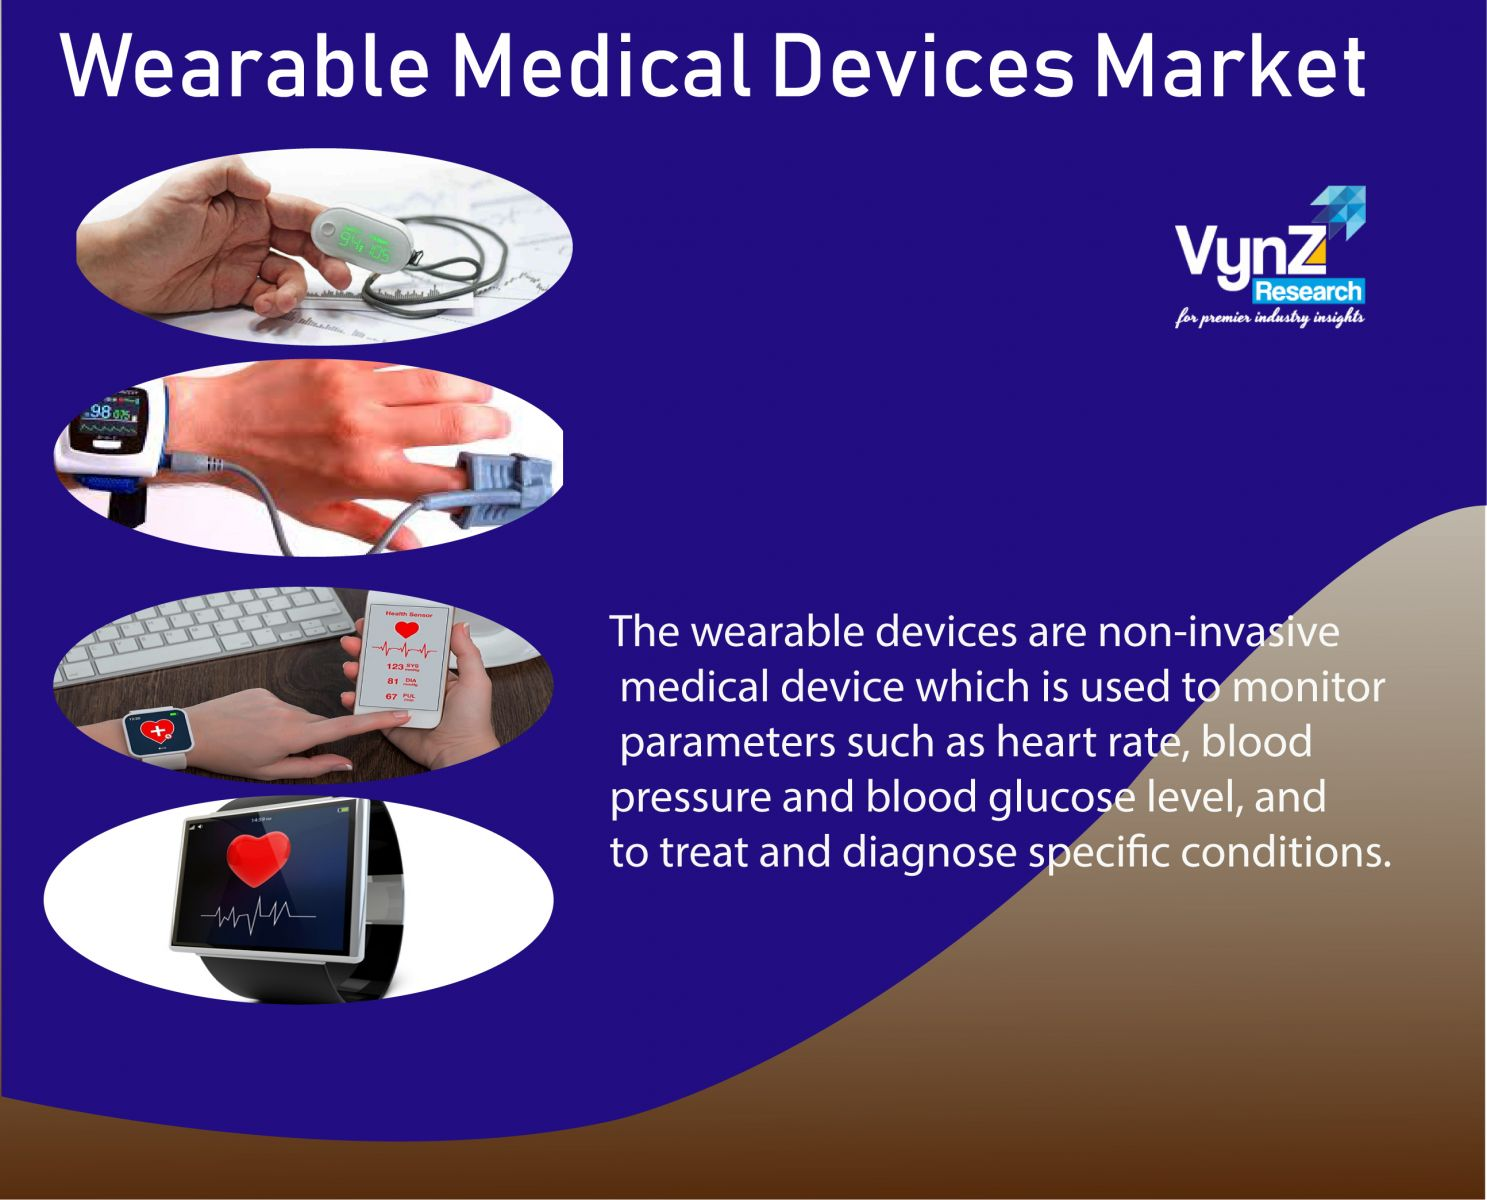 Wearable Medical Devices Market Highlights